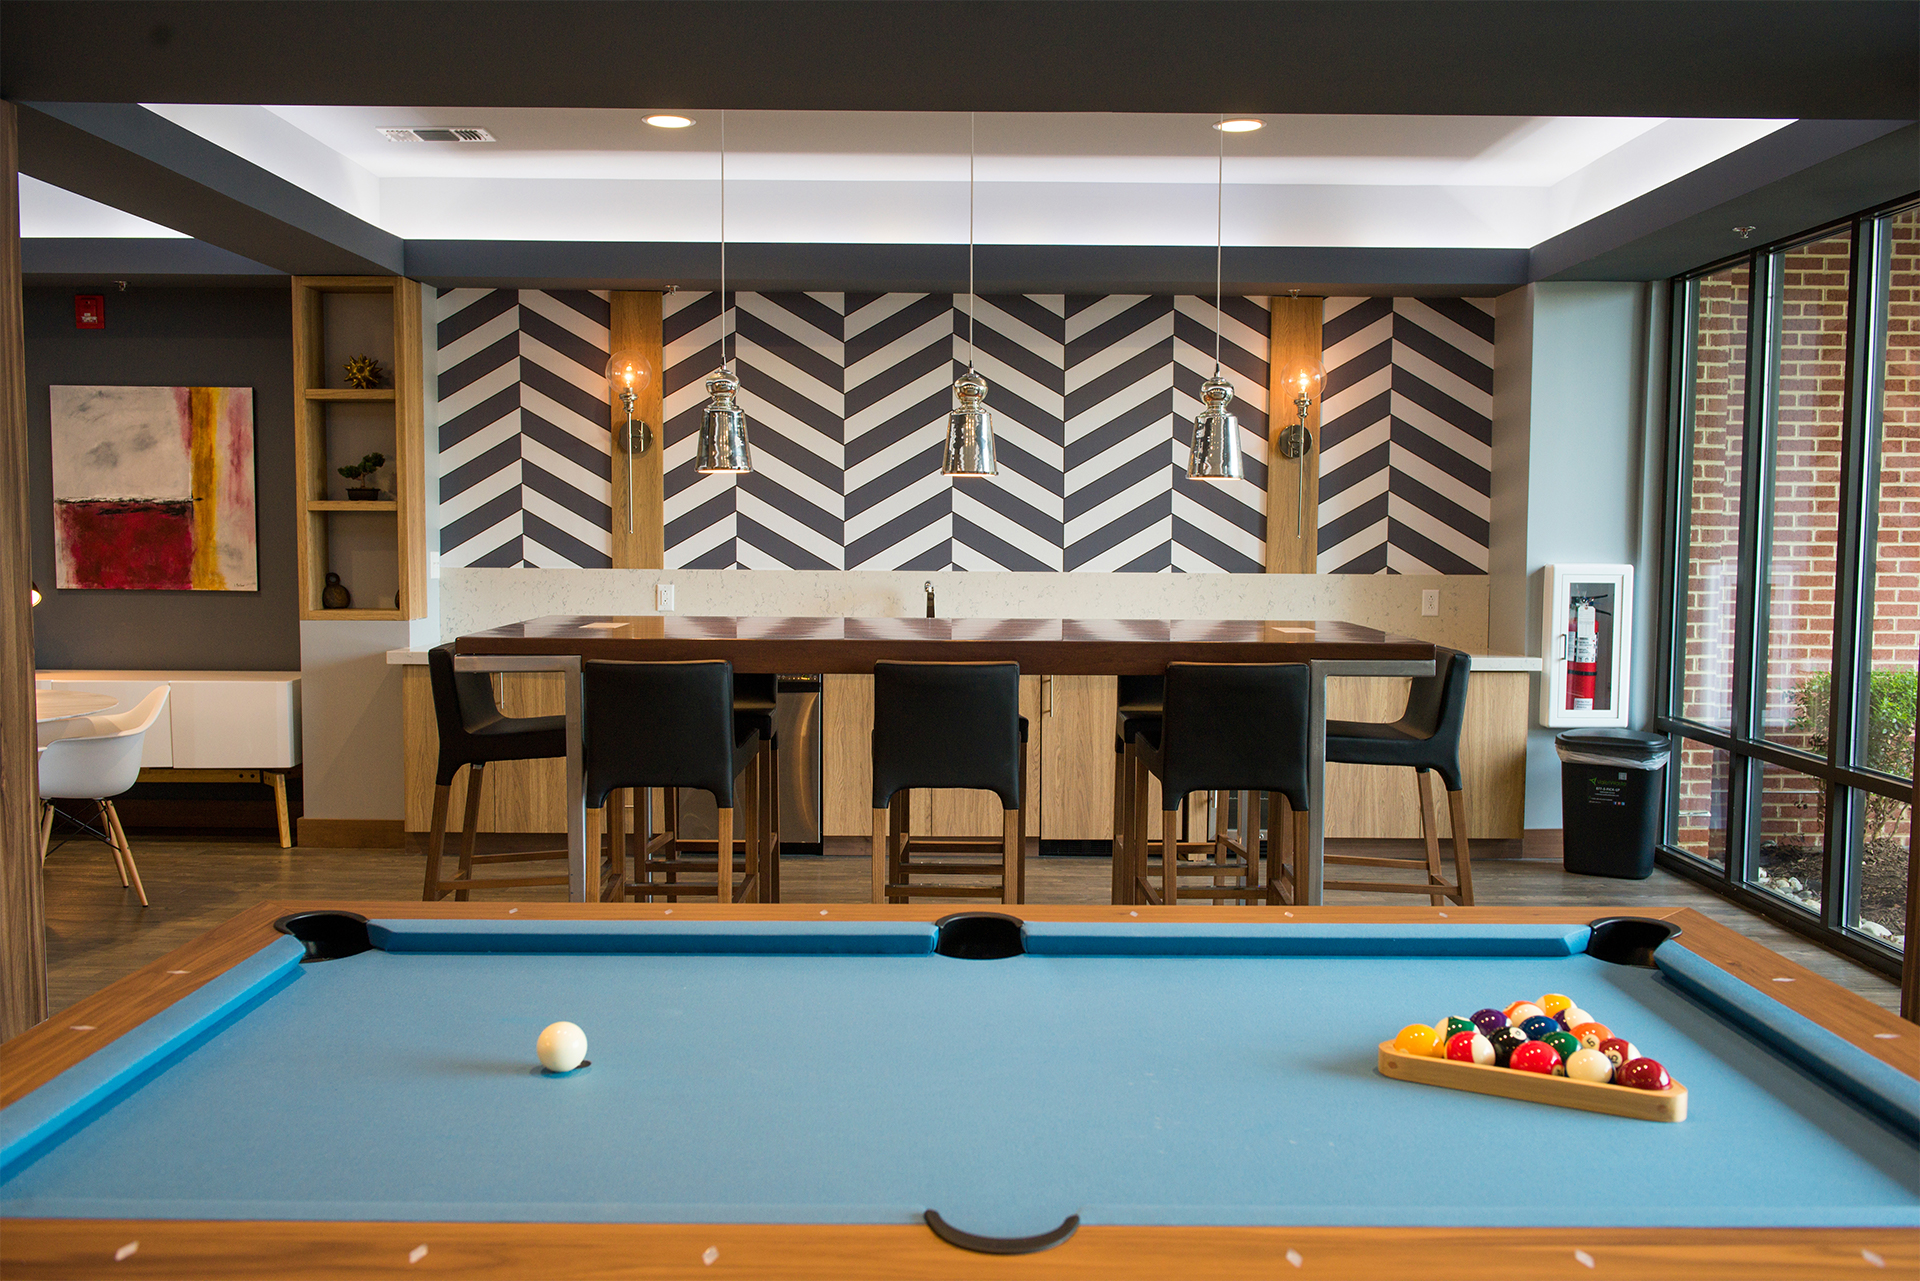 Pool table in the residences at harlan flats community room